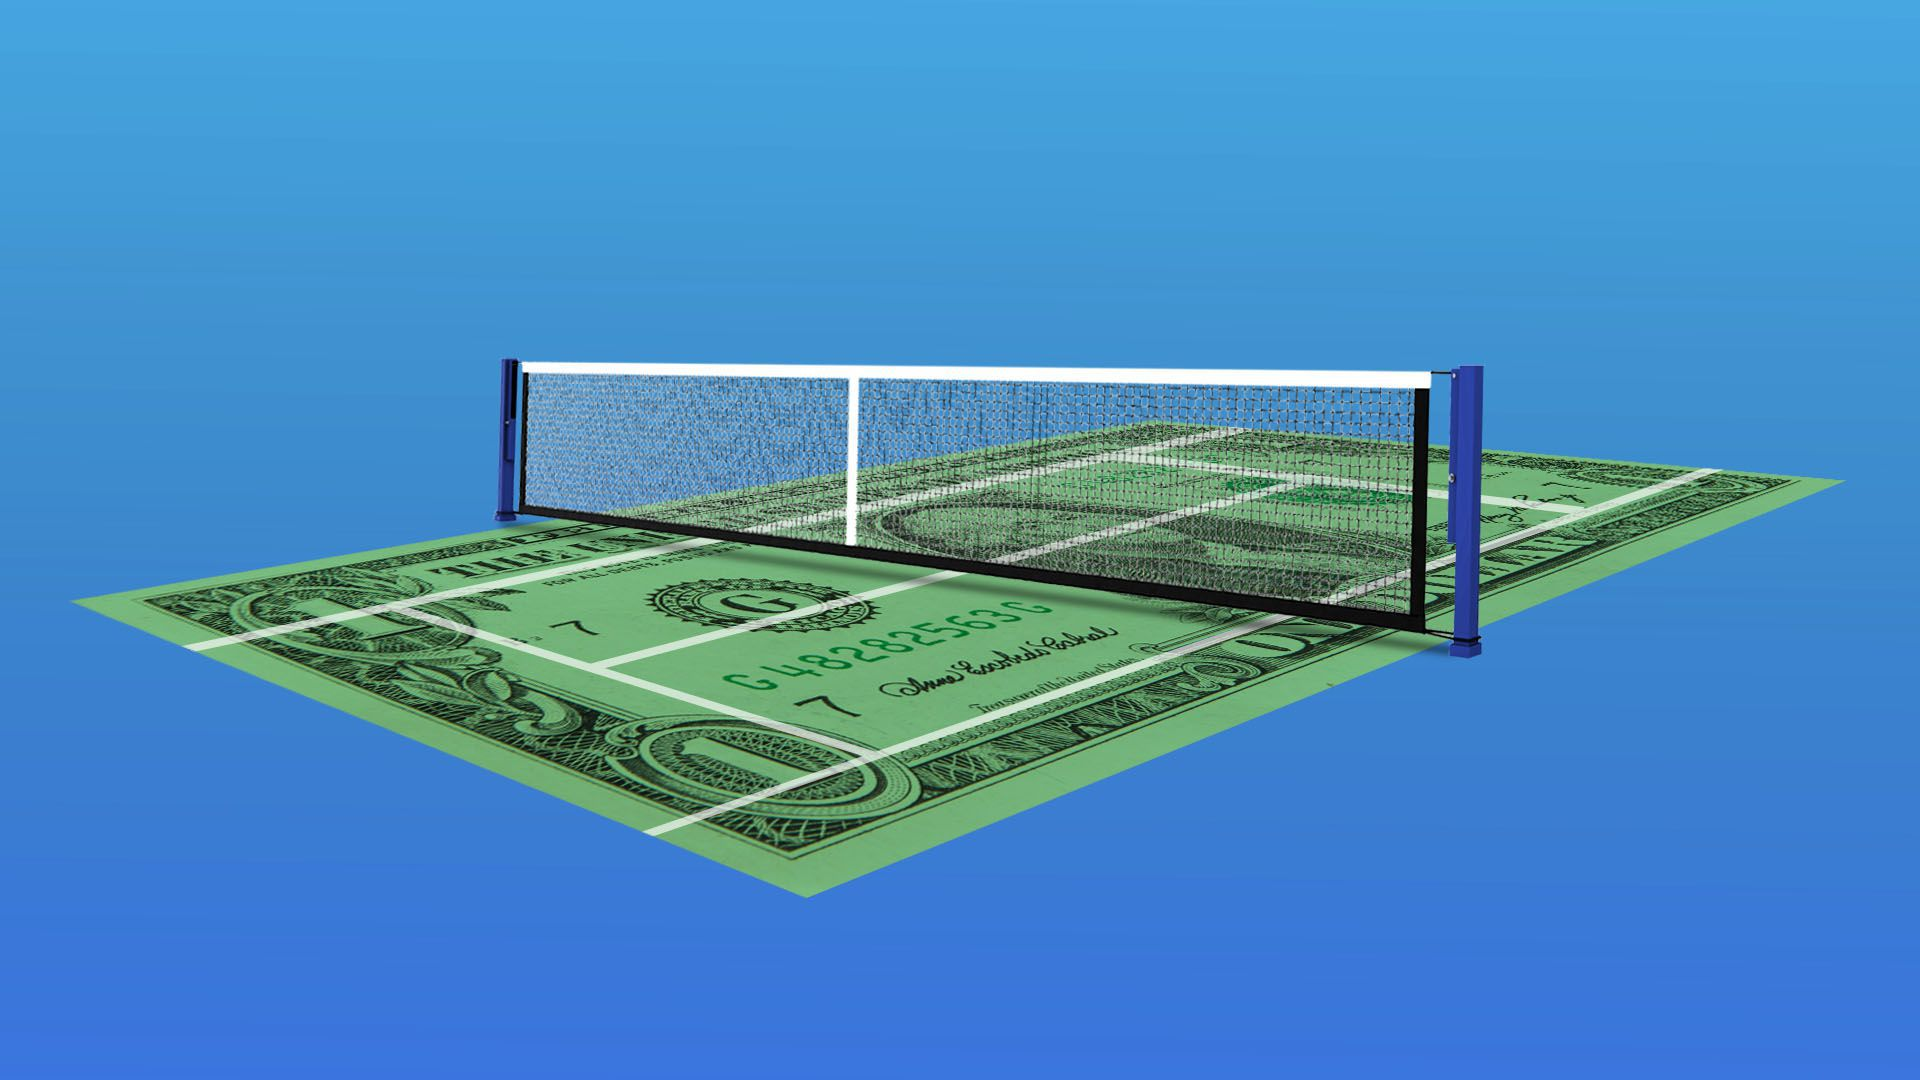 Tennis court as a dollar bill